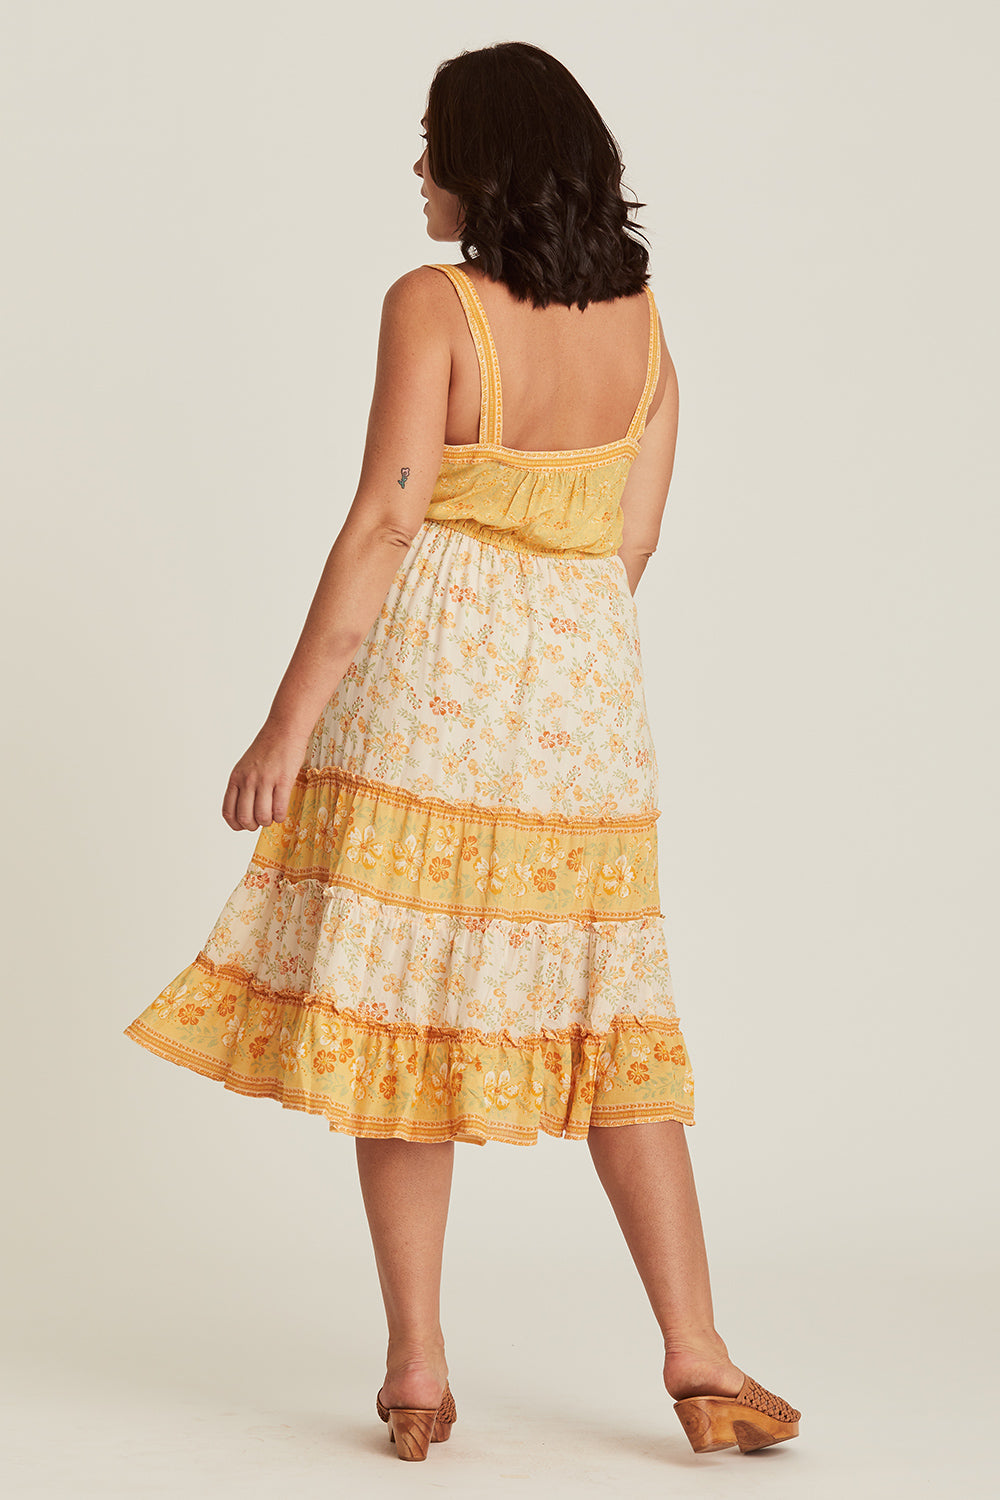 Lily Sundress in Lemon Drop